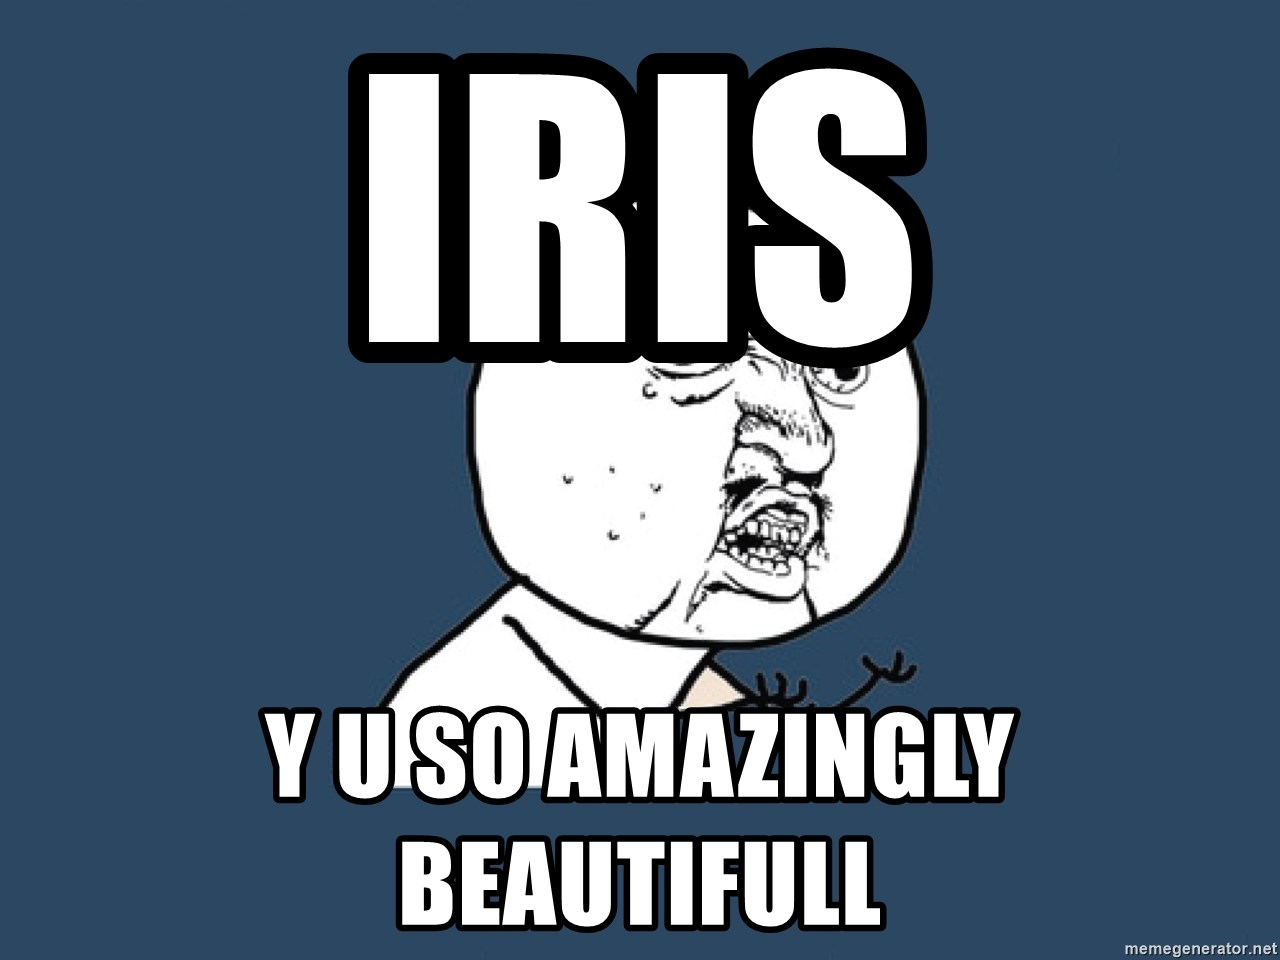 Y U No - IRIS Y U SO AMAZINGLY BEAUTIFULL